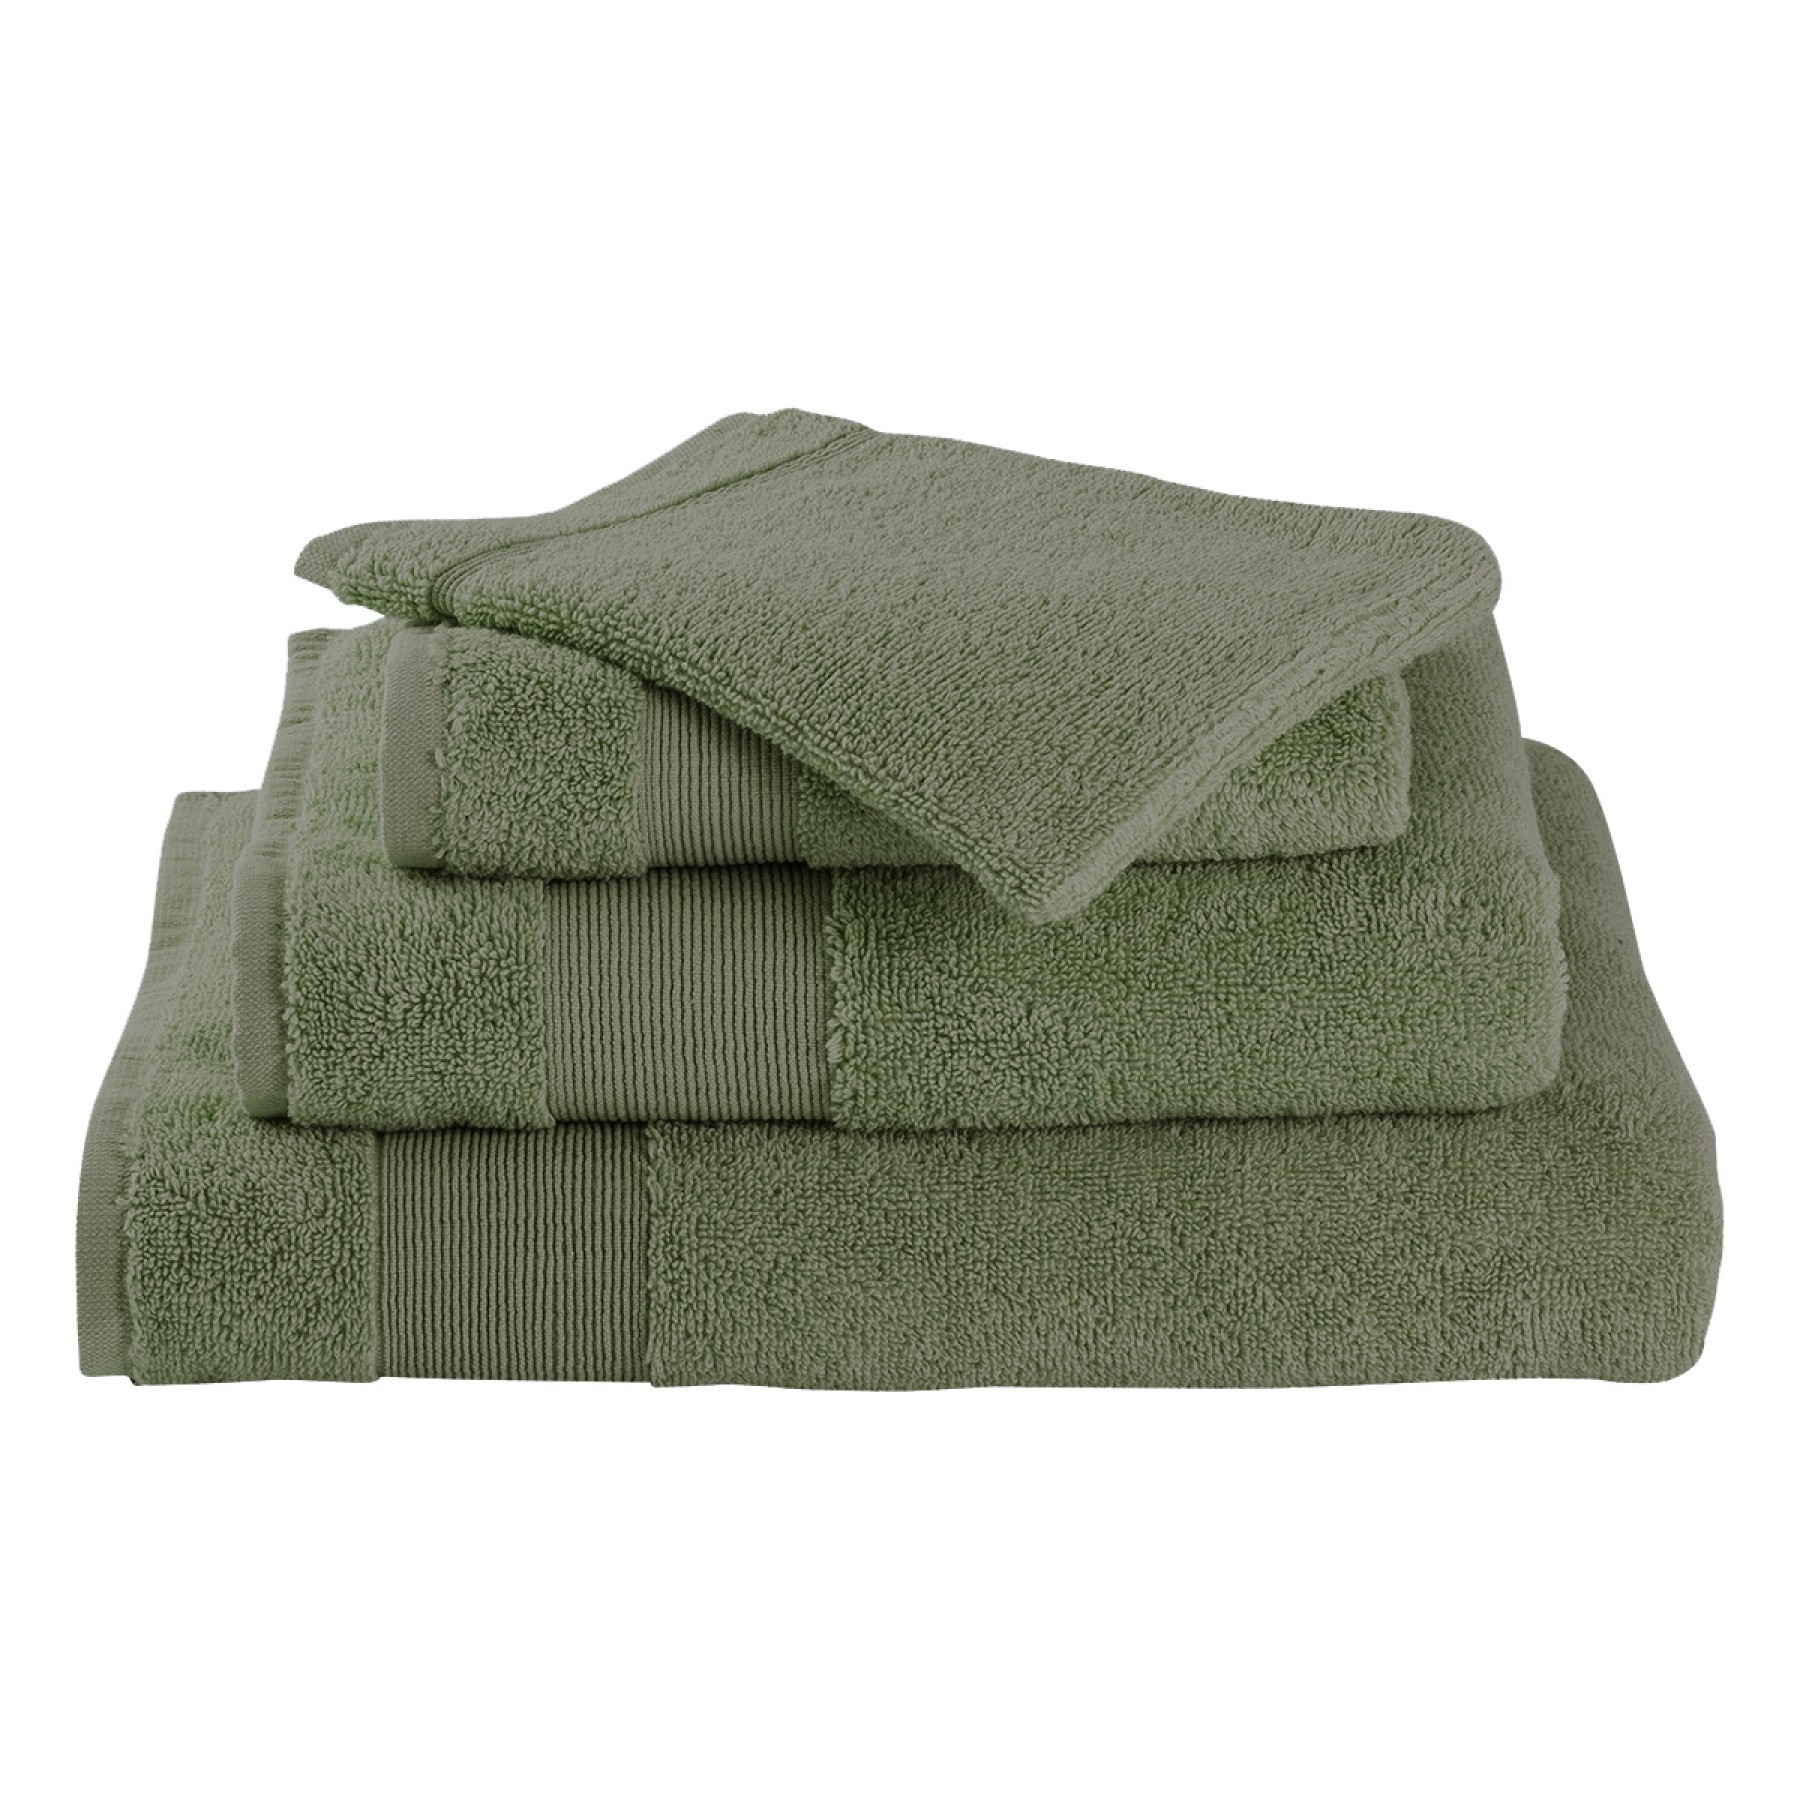 Livello Washand Home Collection Green